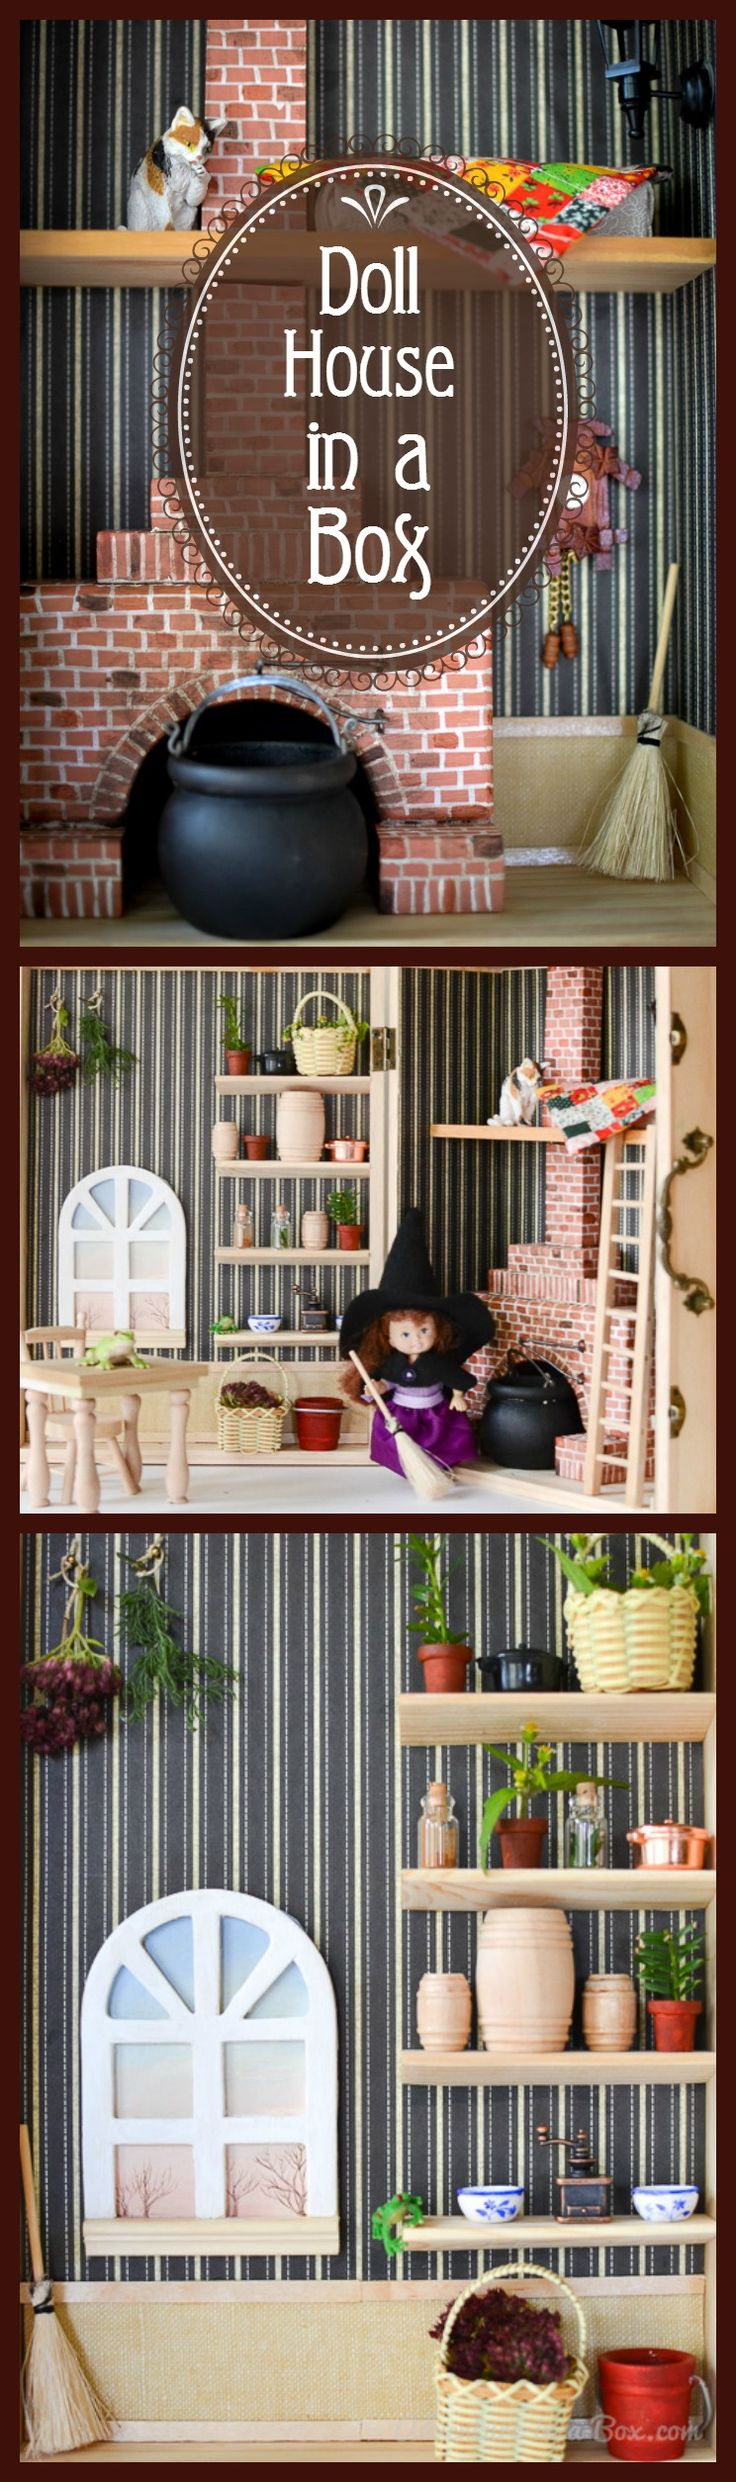 Make a Dollhouse in a Box: DIY tutorial for creating a simple, portable and fun dollhouse for children from a wooden box